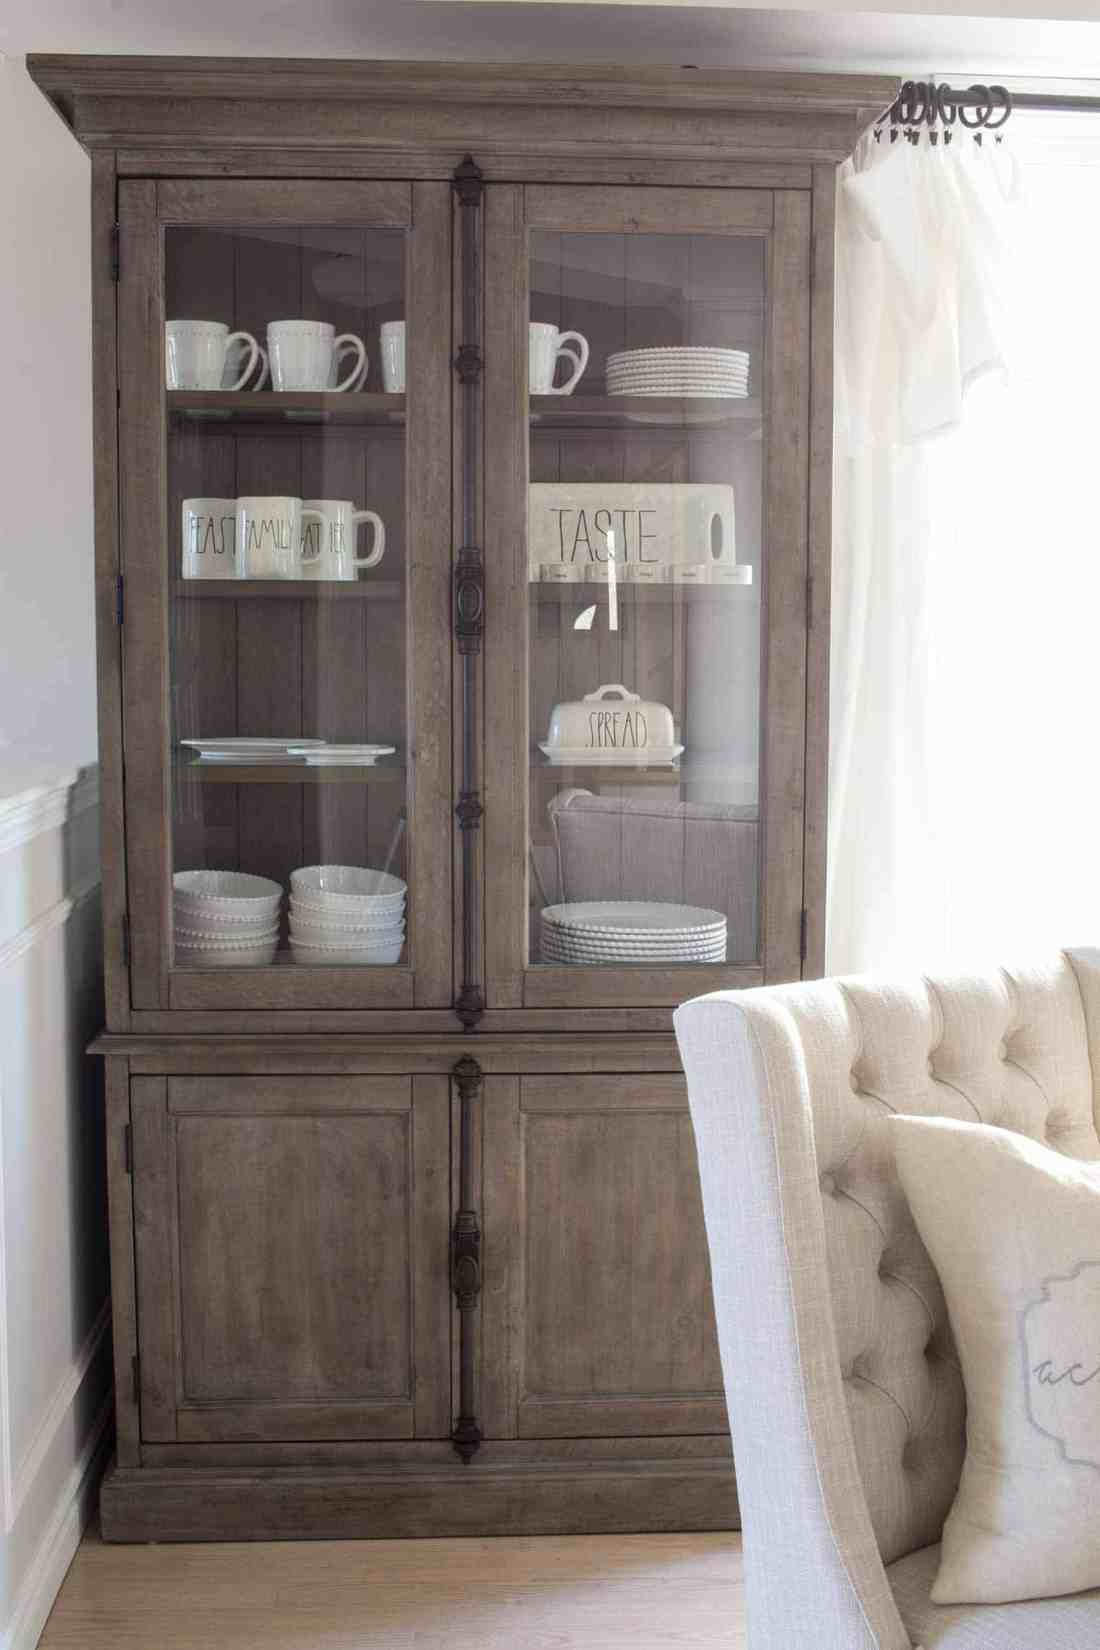 Dean And Shannons From HomeMadeLovely Suburban Farmhouse Dining Room Reveal